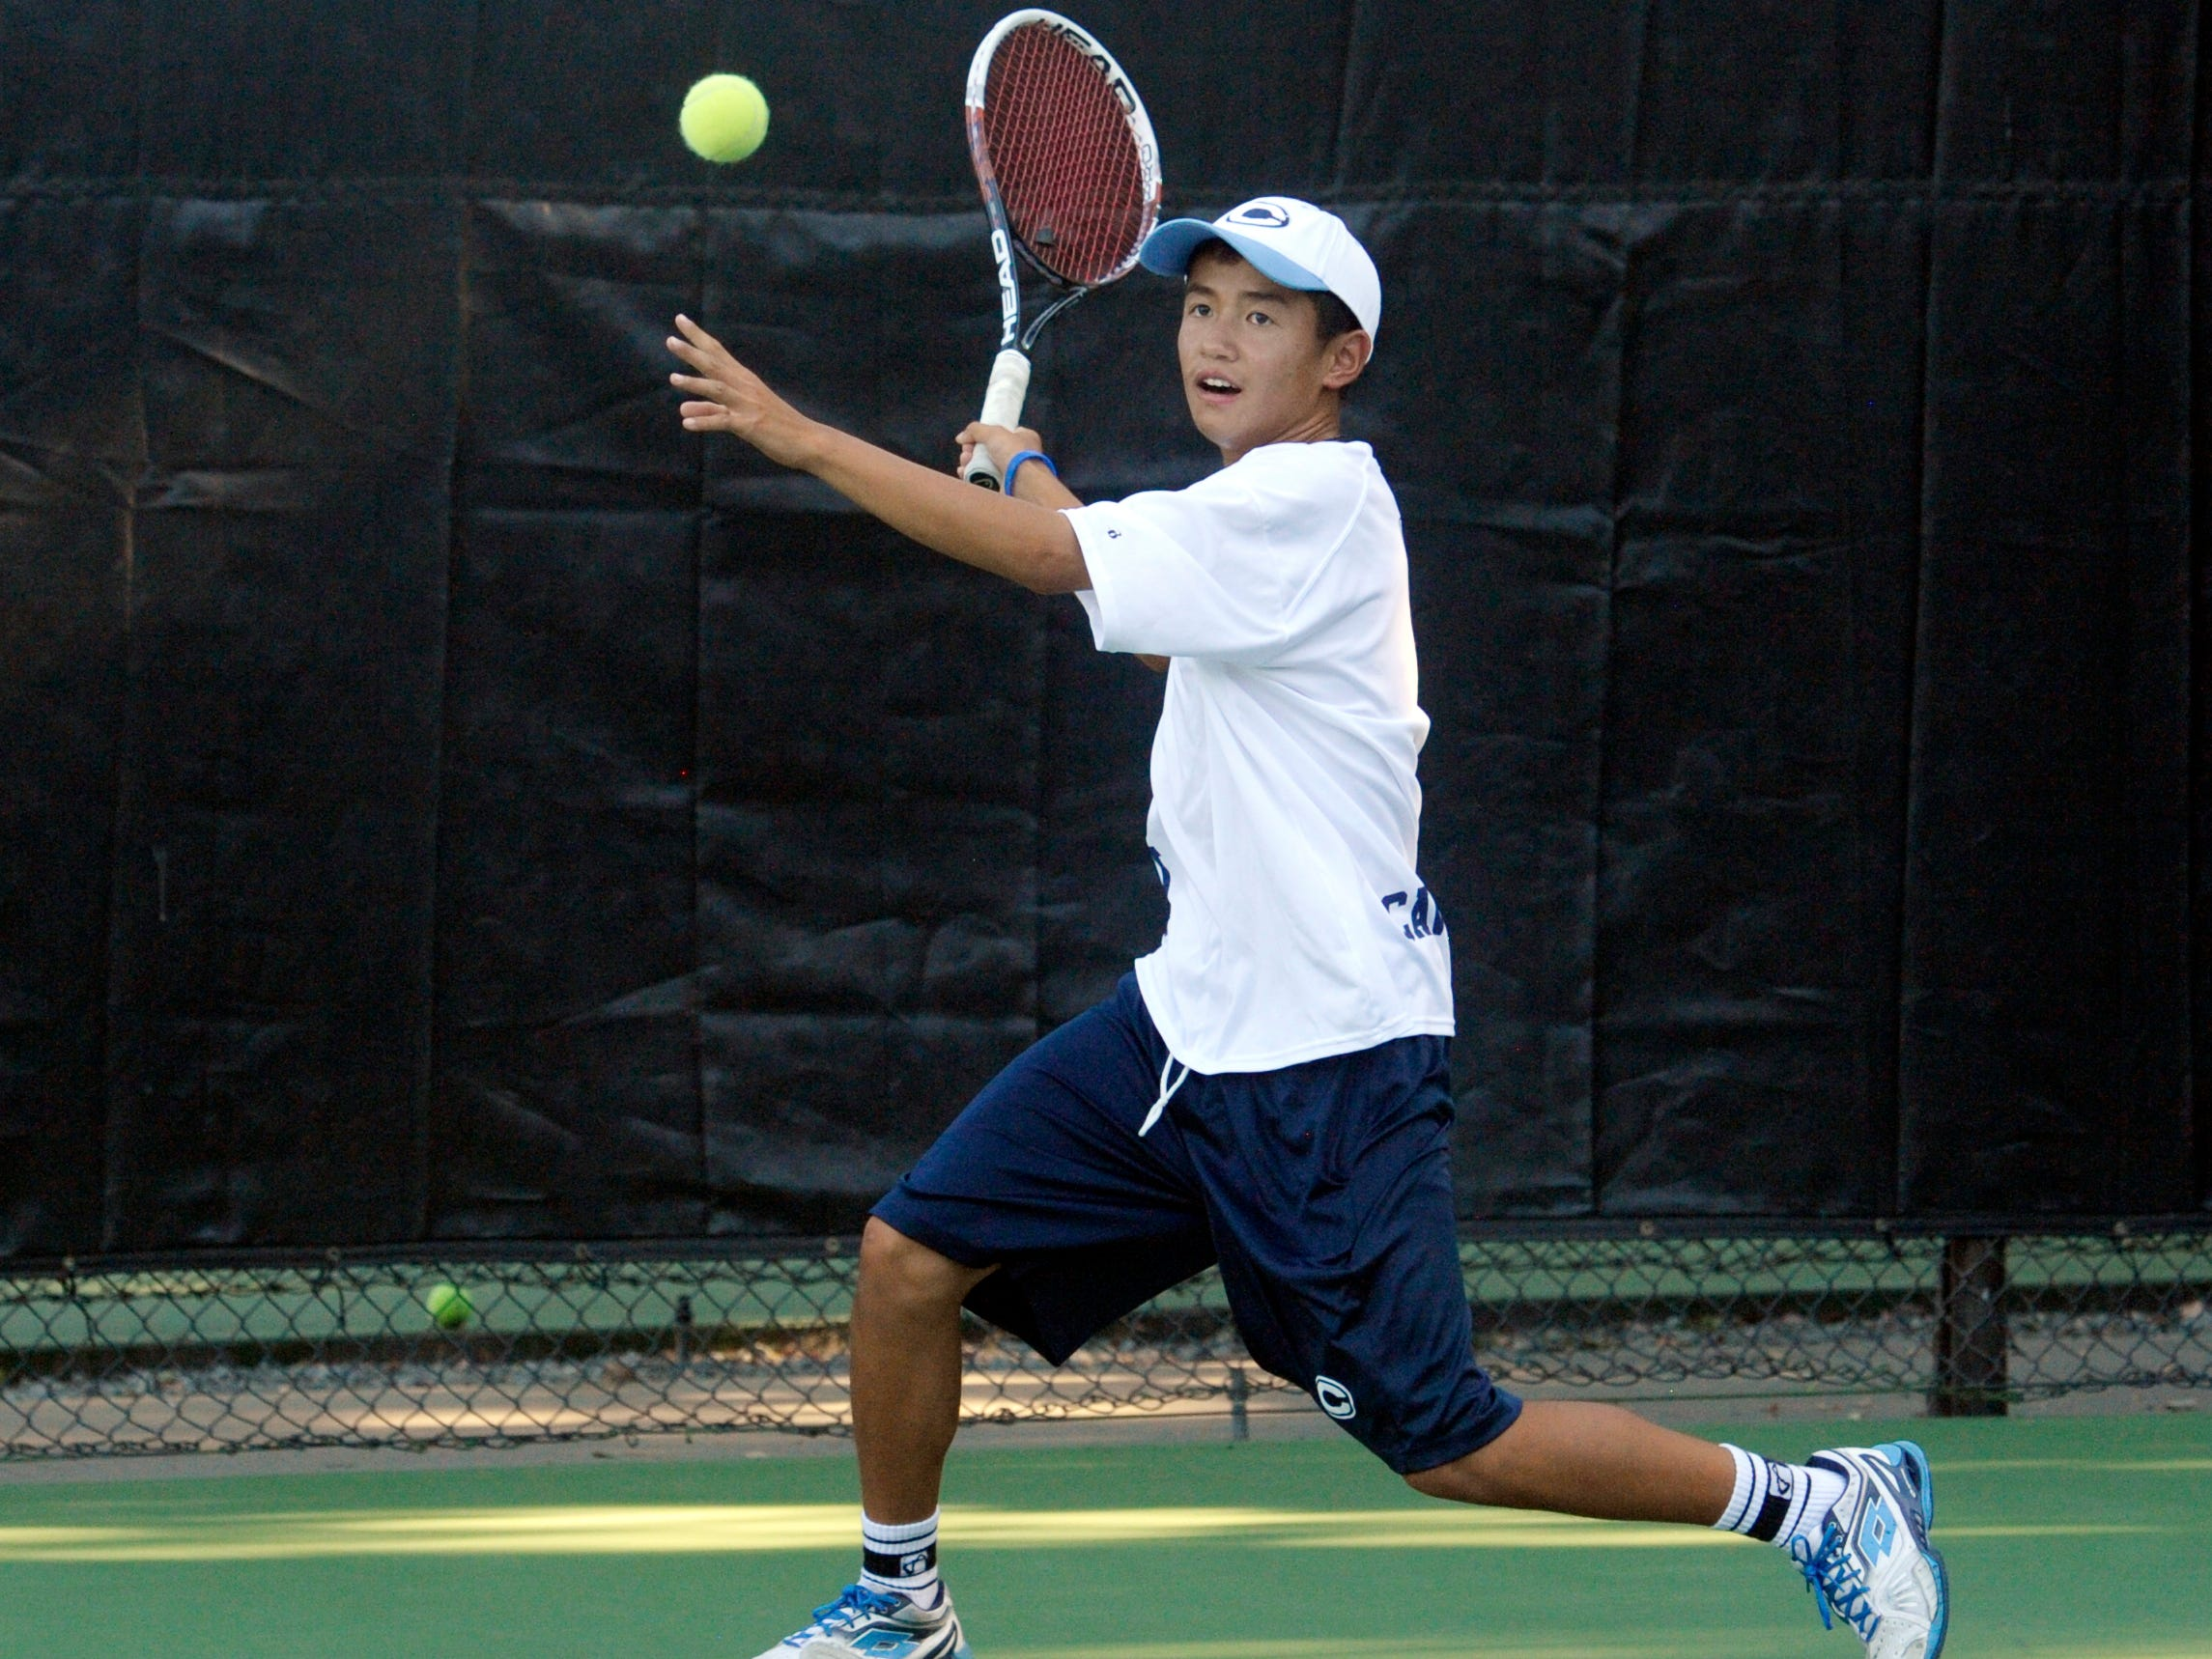 Central Valley Christian's Bailey Gong is the defending Central Area singles champion. The Central Area Championships are May 8-9 at Golden West.